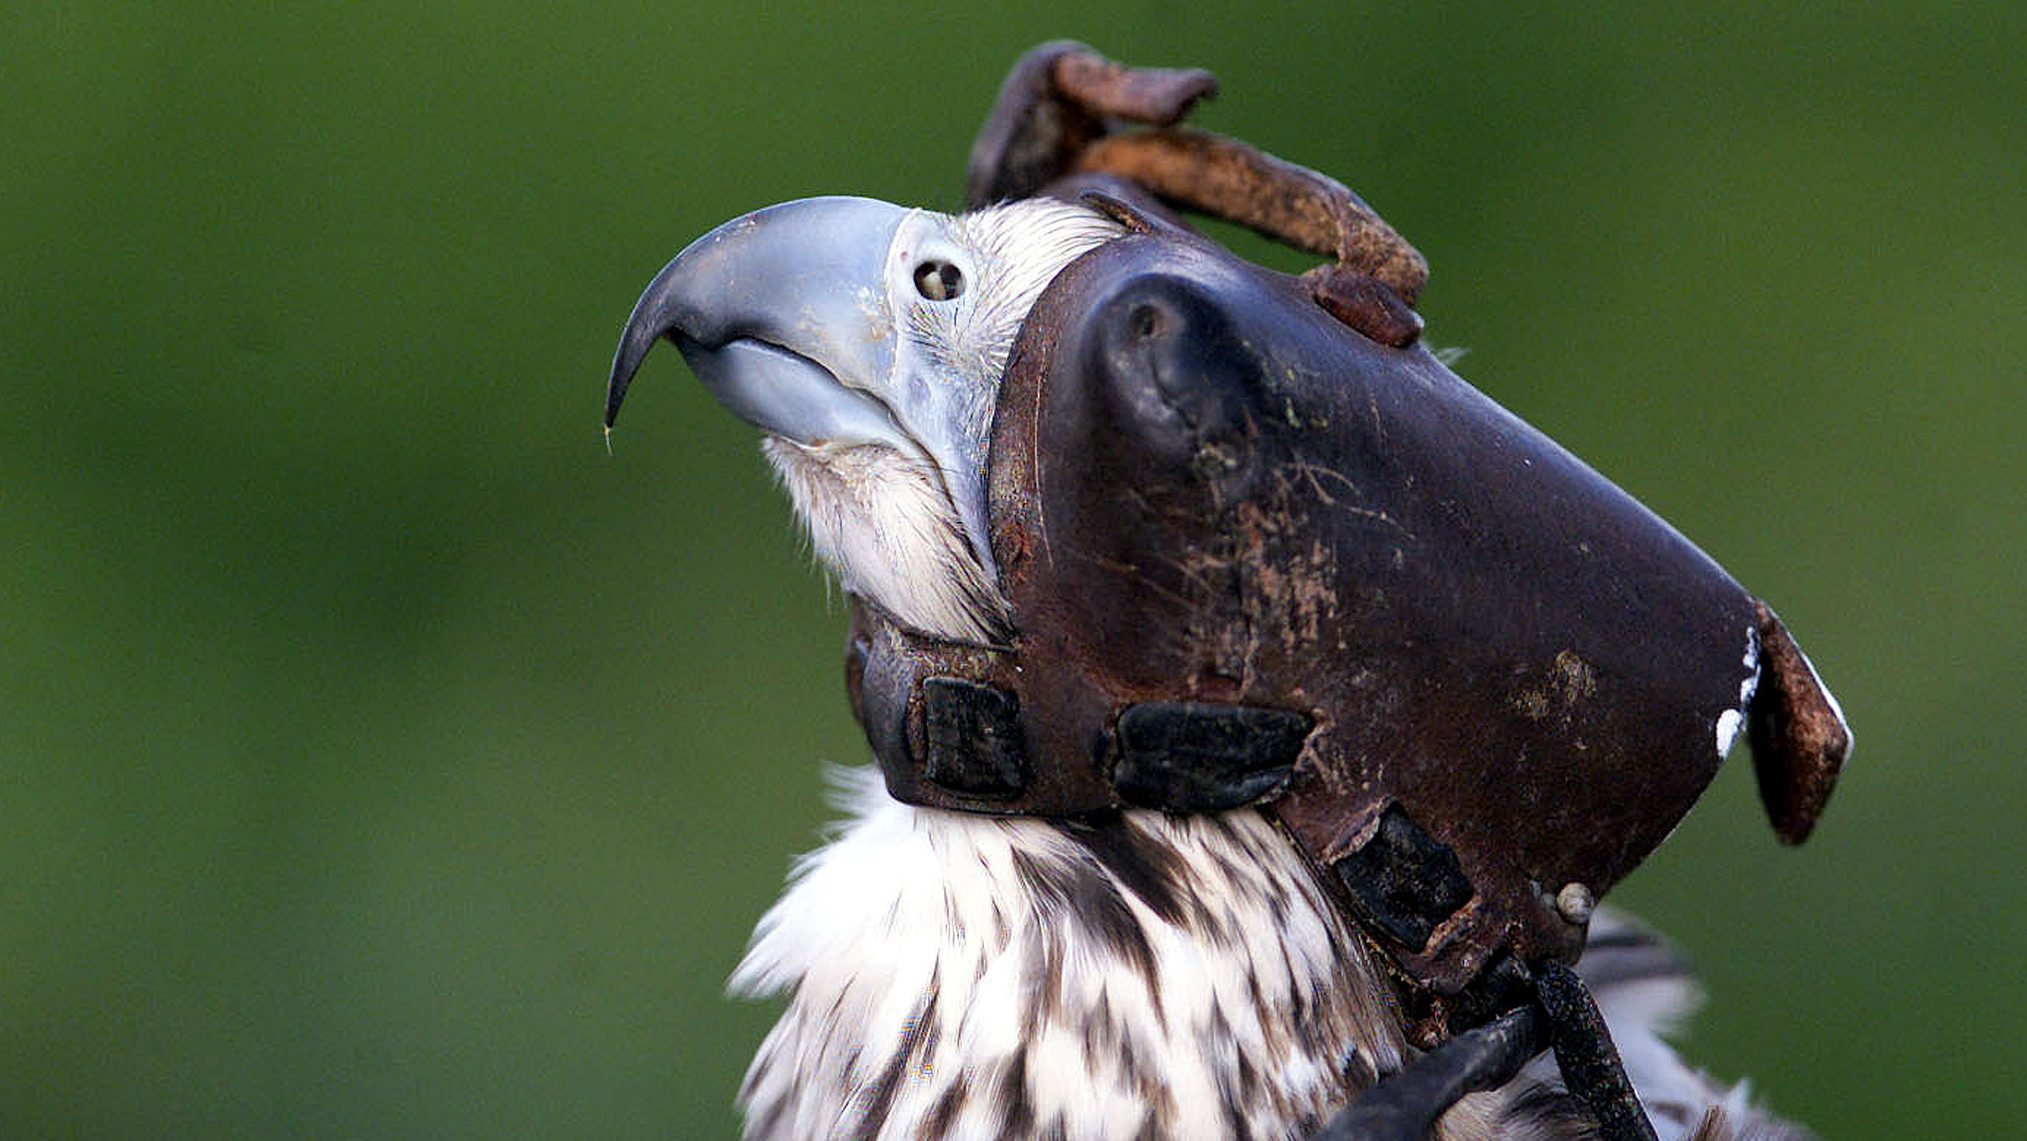 A Sacre falcon named Yeur wears a leather blinder in the vineyards at Chateau Quinault in Saint Emilion on September 11, 2002. The vineyard owners employ a falconer and his birds to protect the vines against starlings who peck and damage grapes as they ripen during the three months before the harvest season.